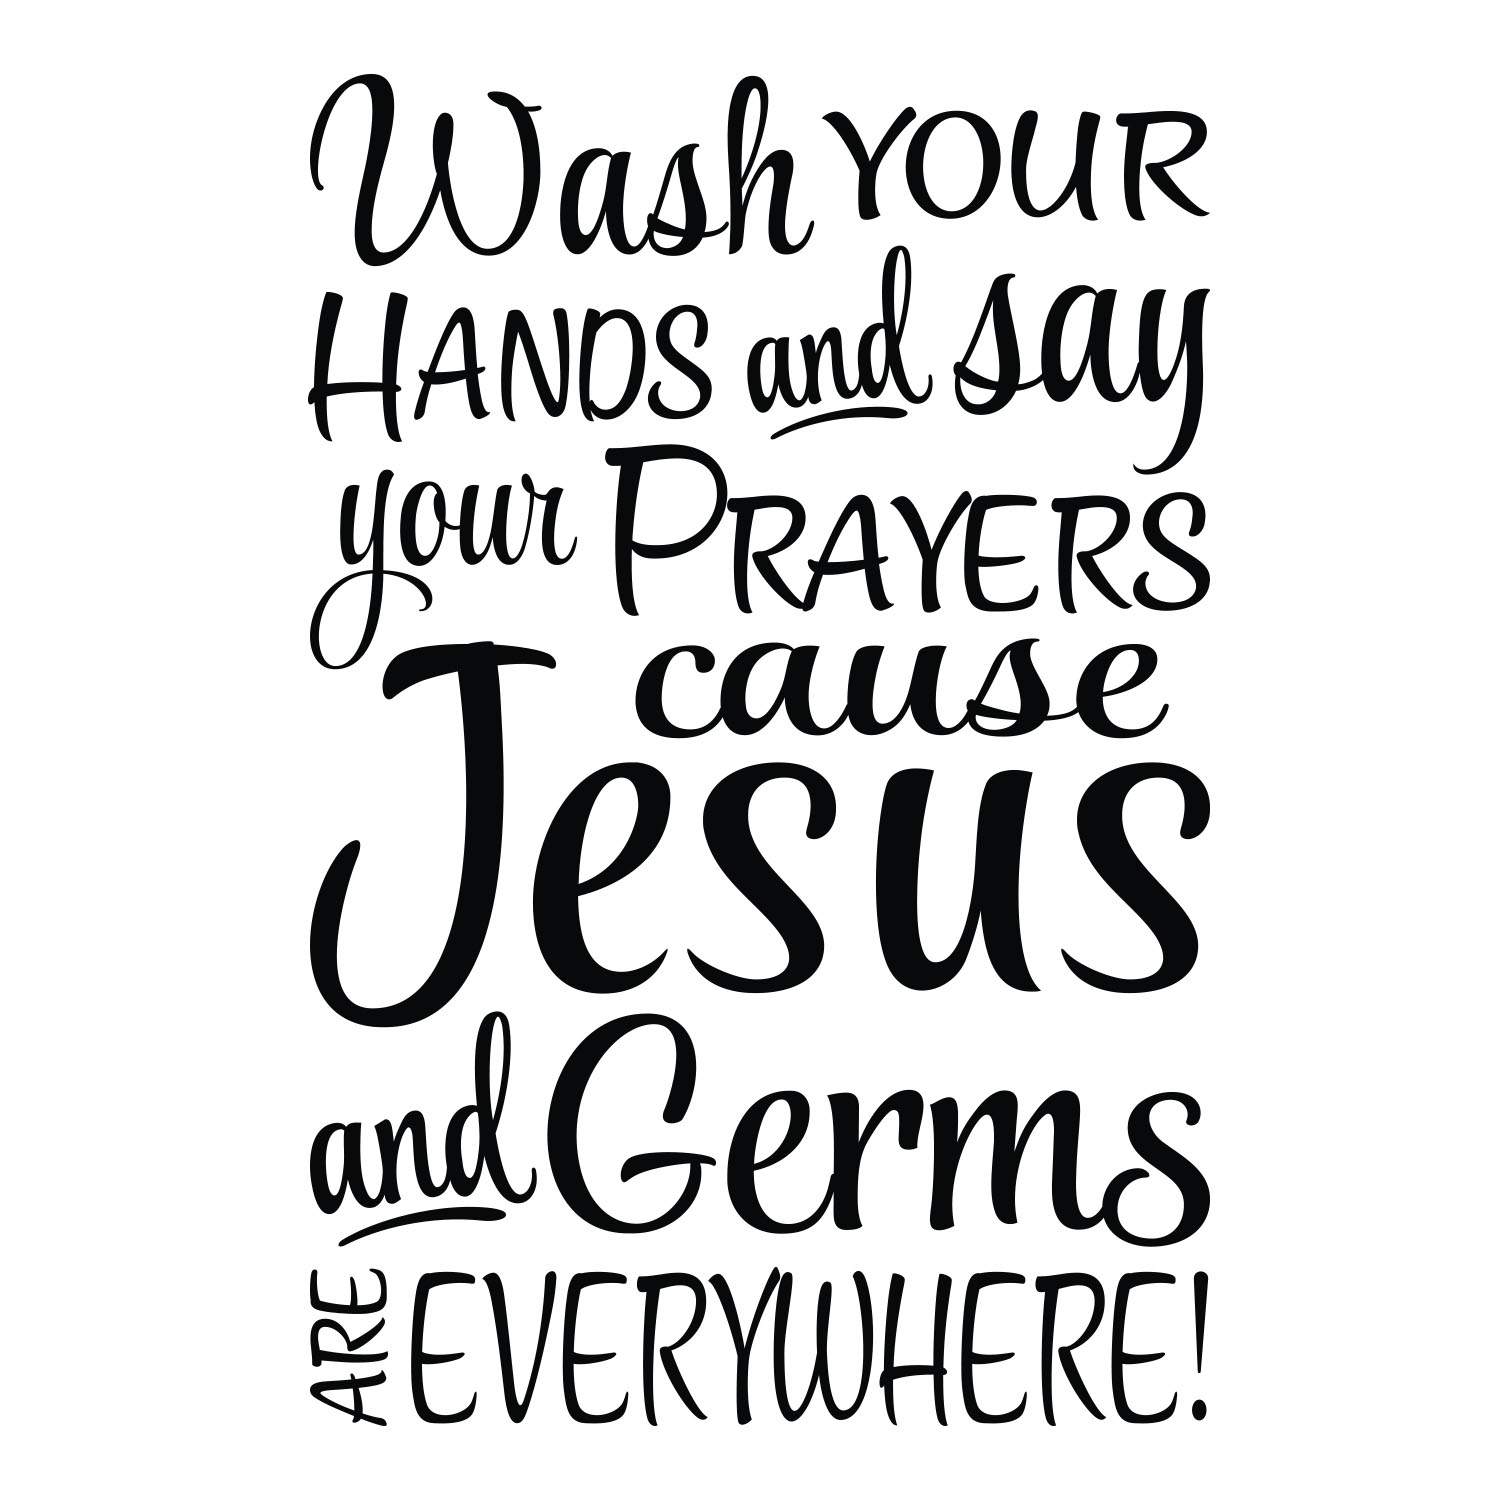 Wash Your Hands And Say Your Prayers Cause Jesus And Germs